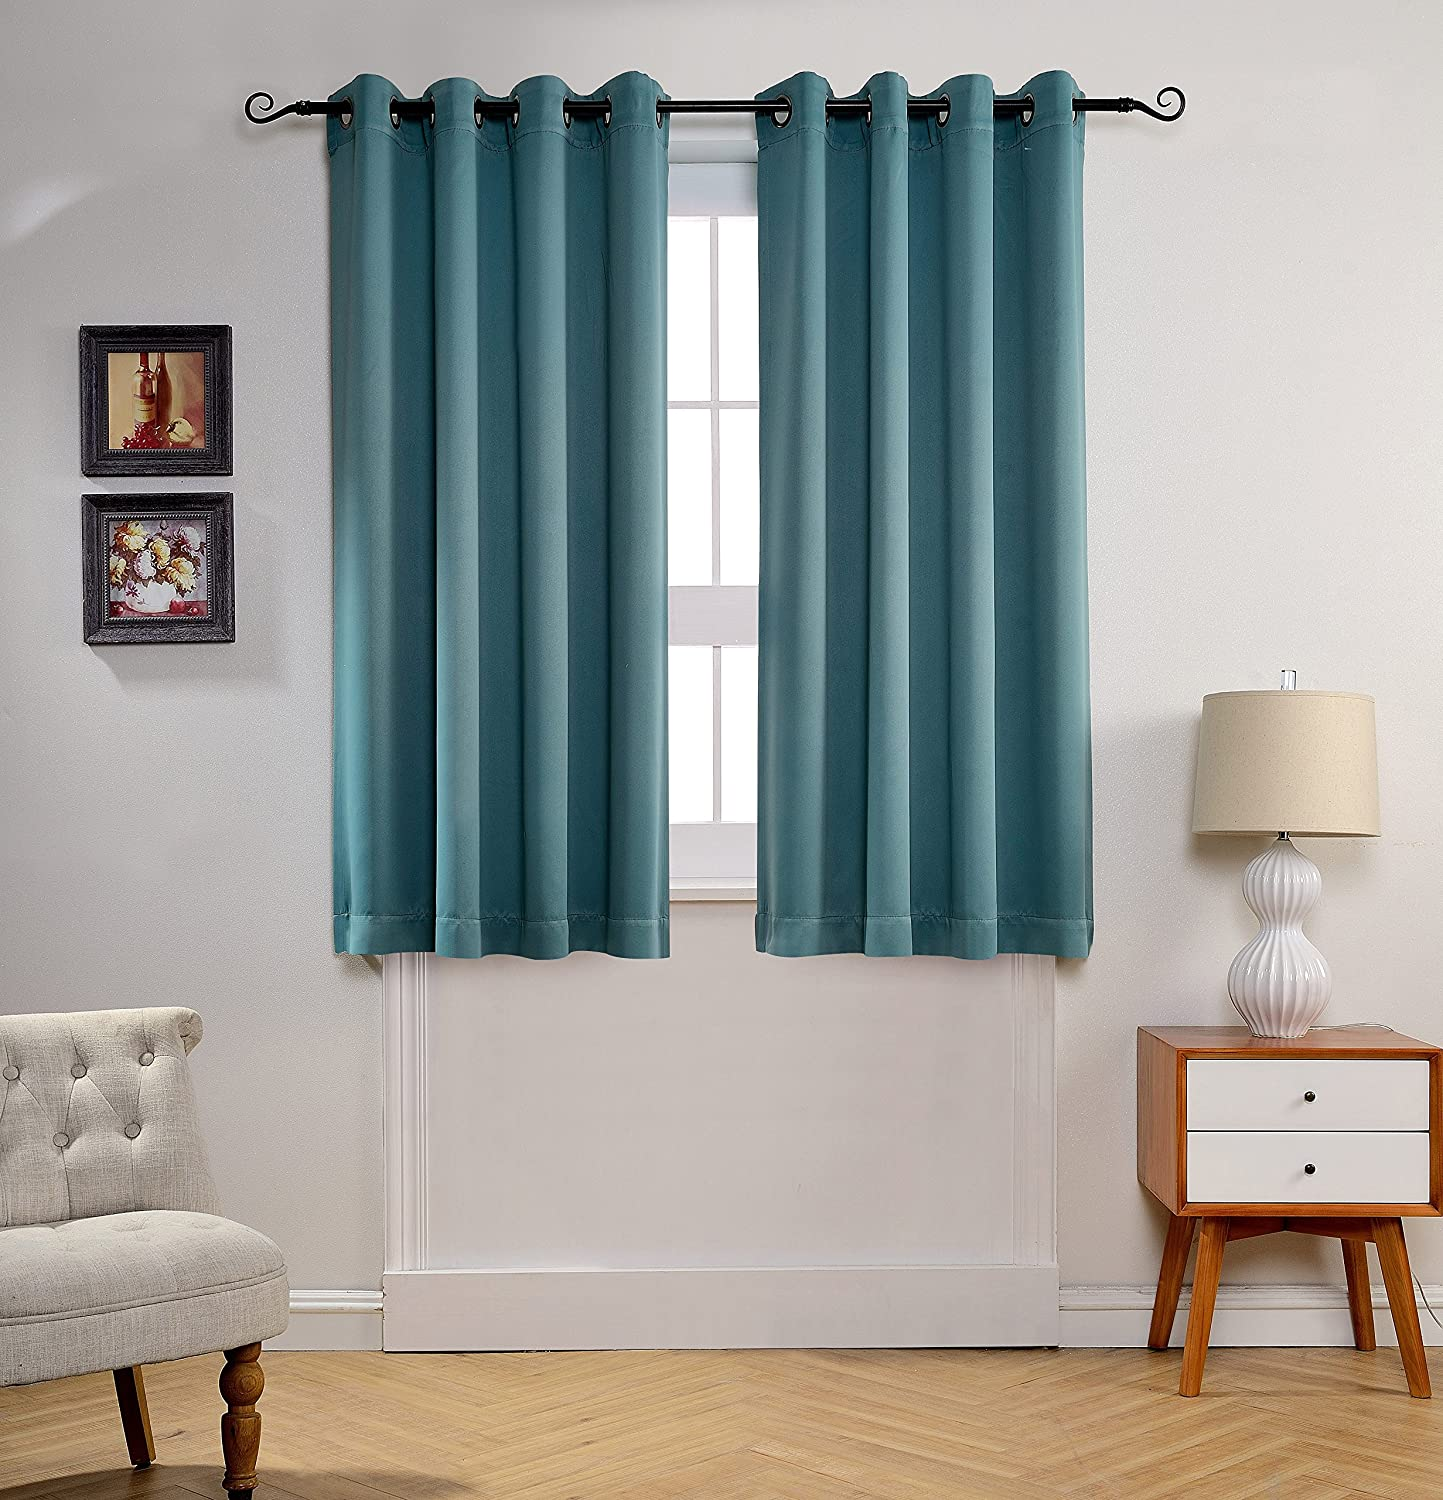 Best Curtains with Low Budget – Ease Bedding with Style